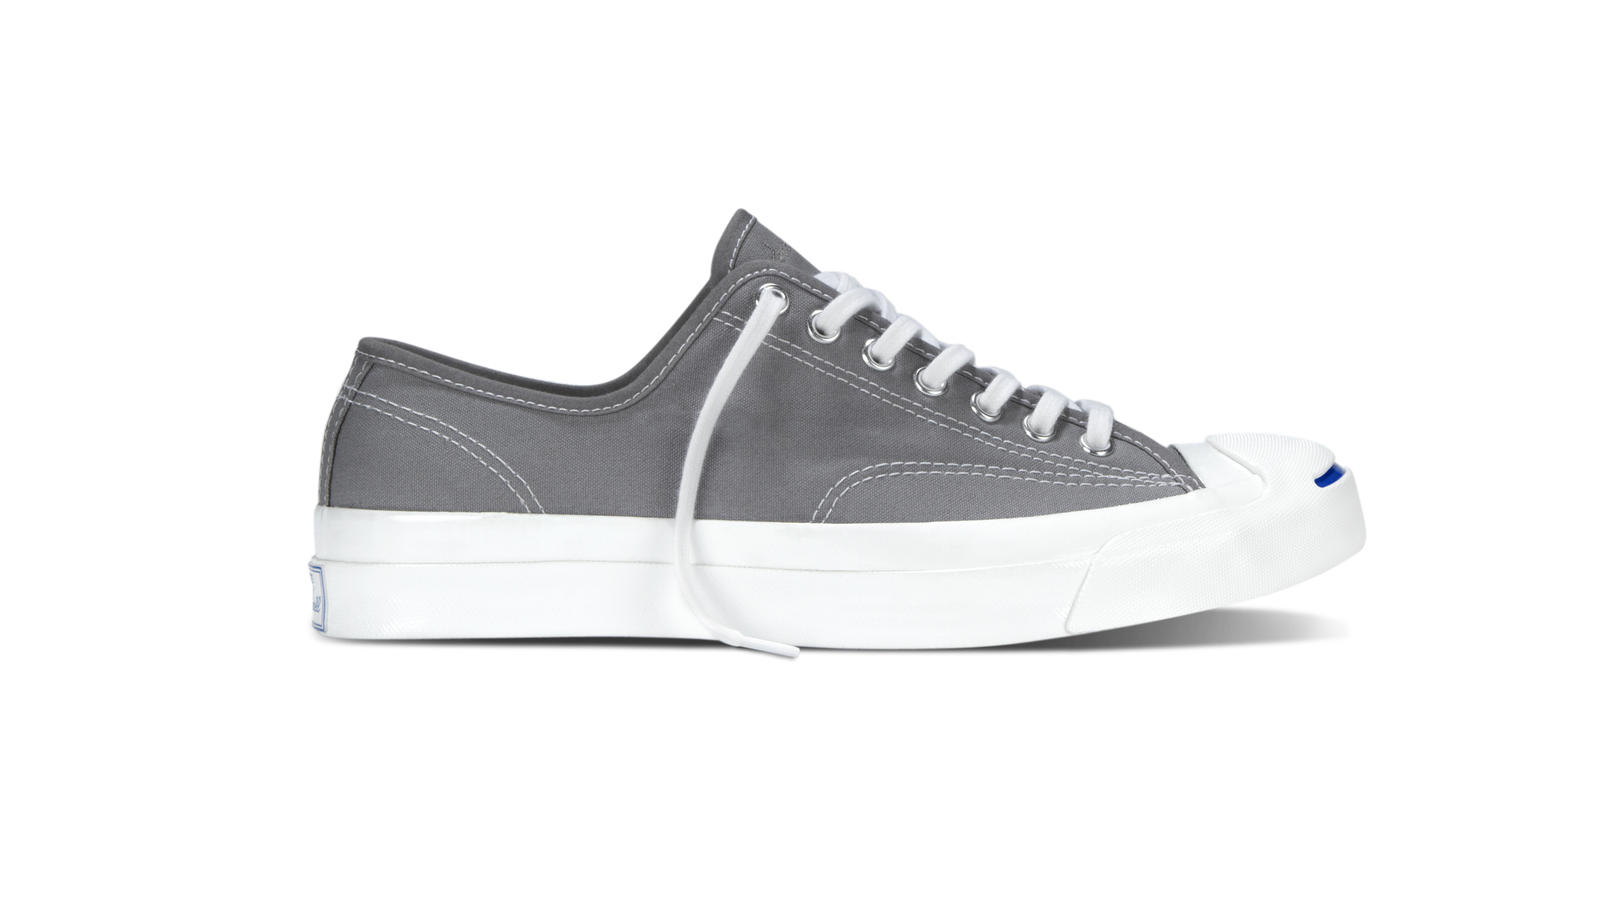 5d0838a383fc06 CONVERSE DEBUTS THE JACK PURCELL SIGNATURE SNEAKER - Nike News